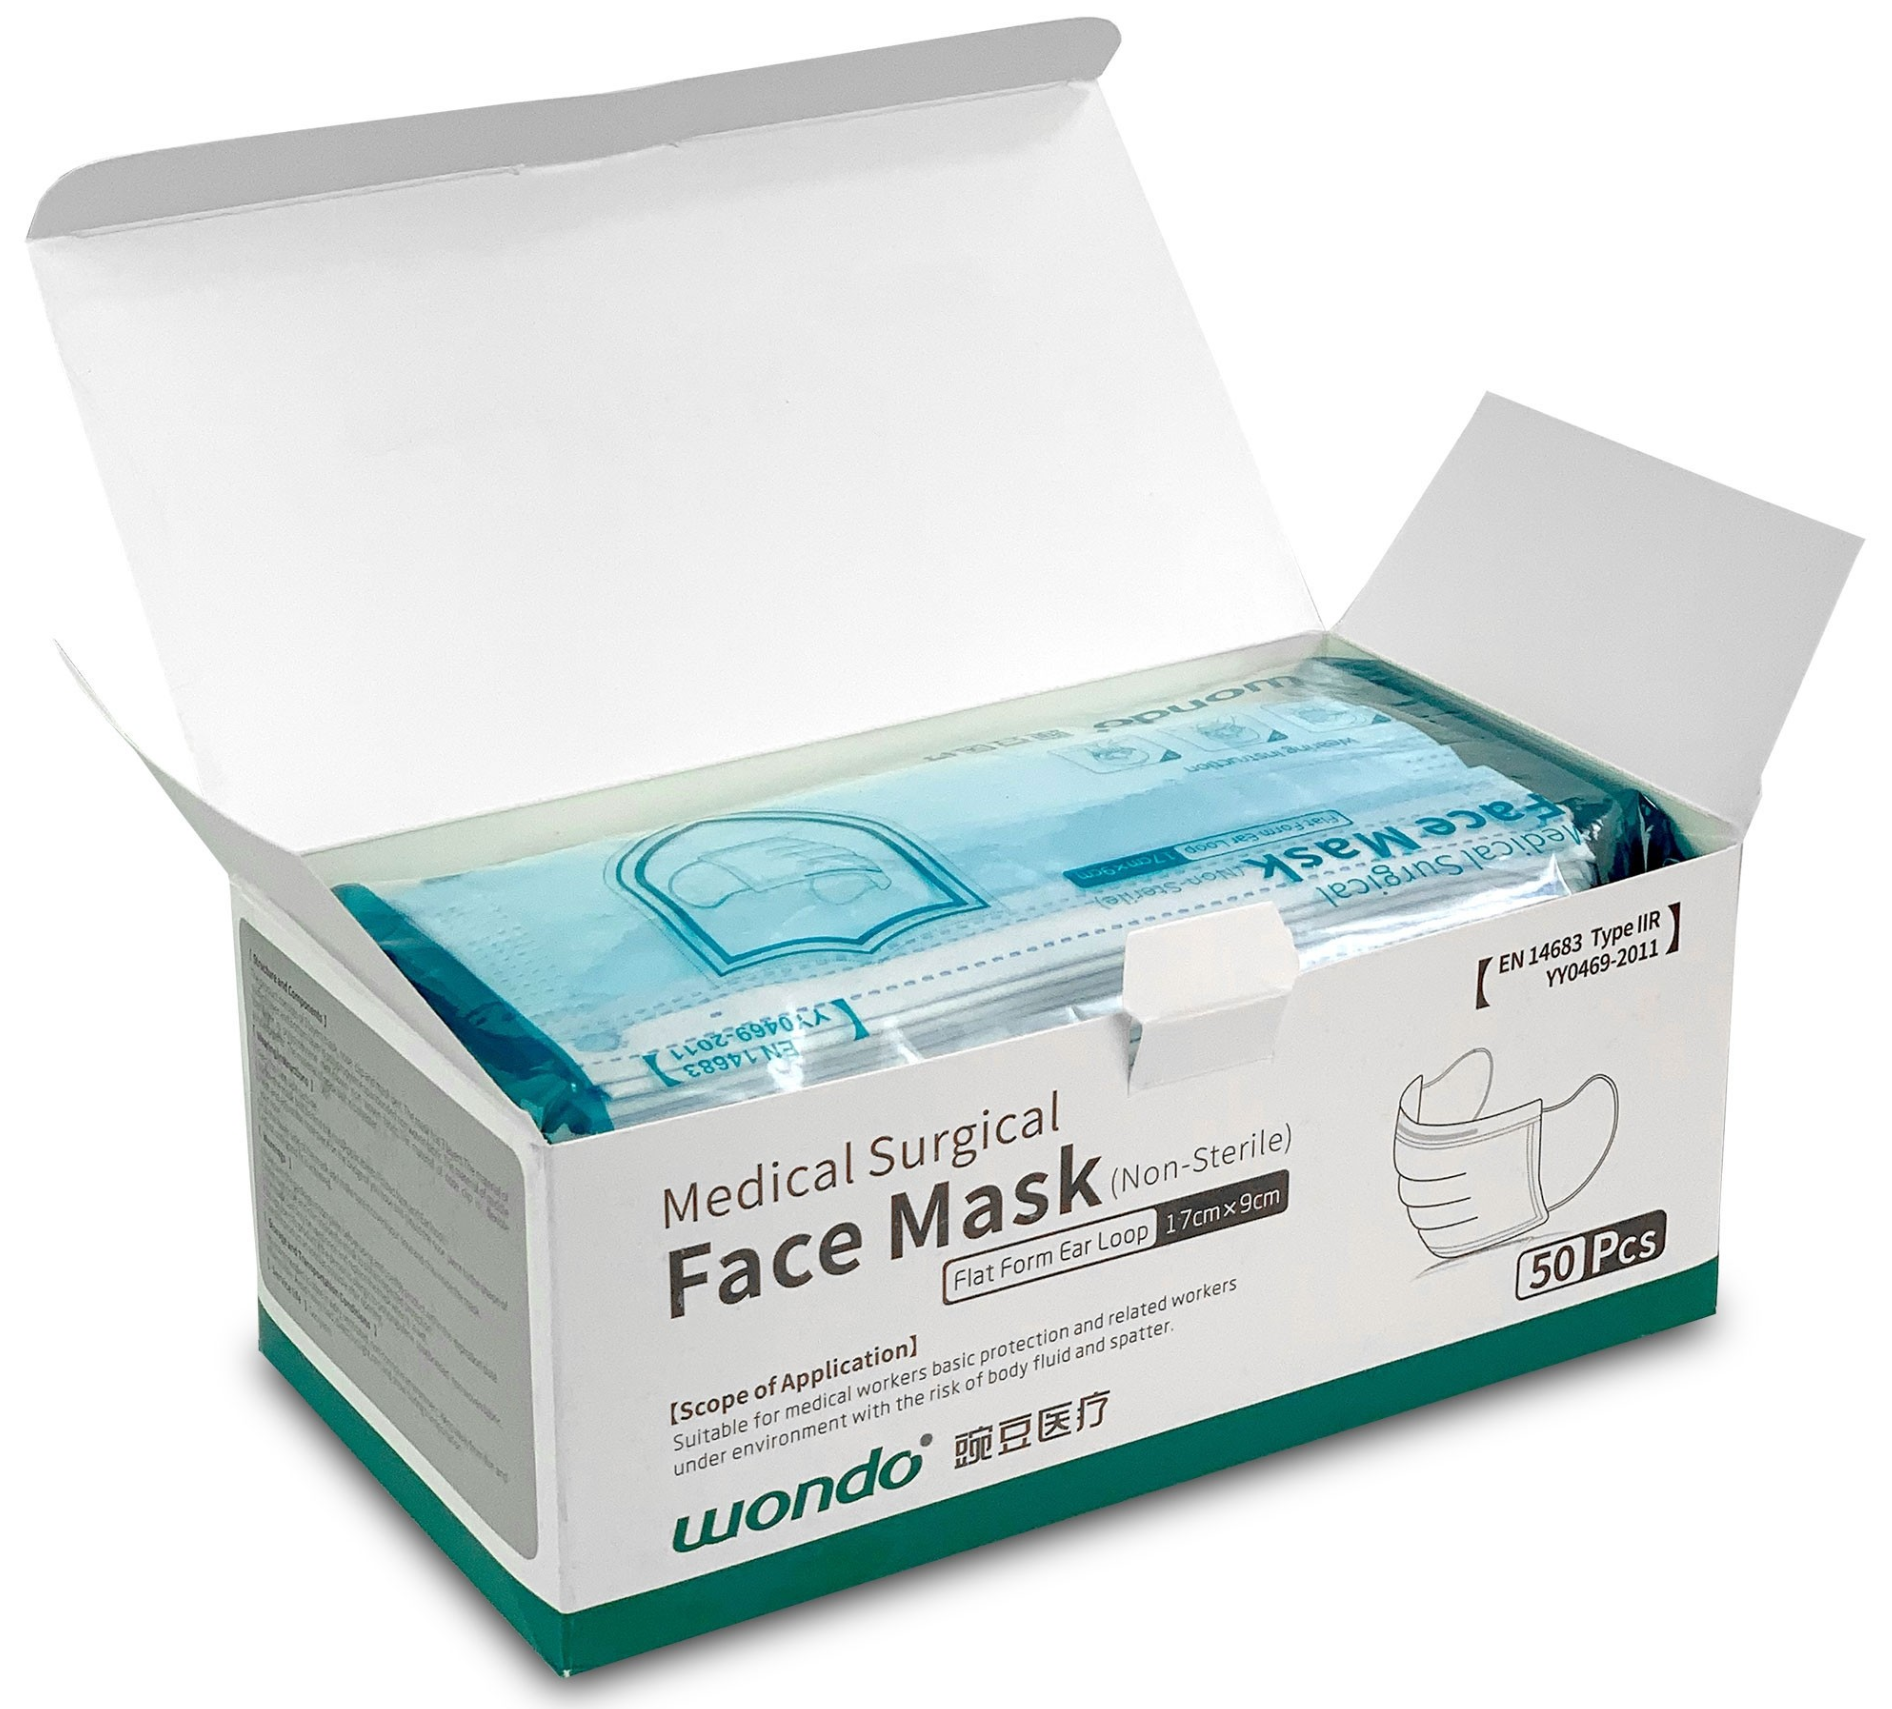 Face Mask Type IIR medical grade (50-pack)